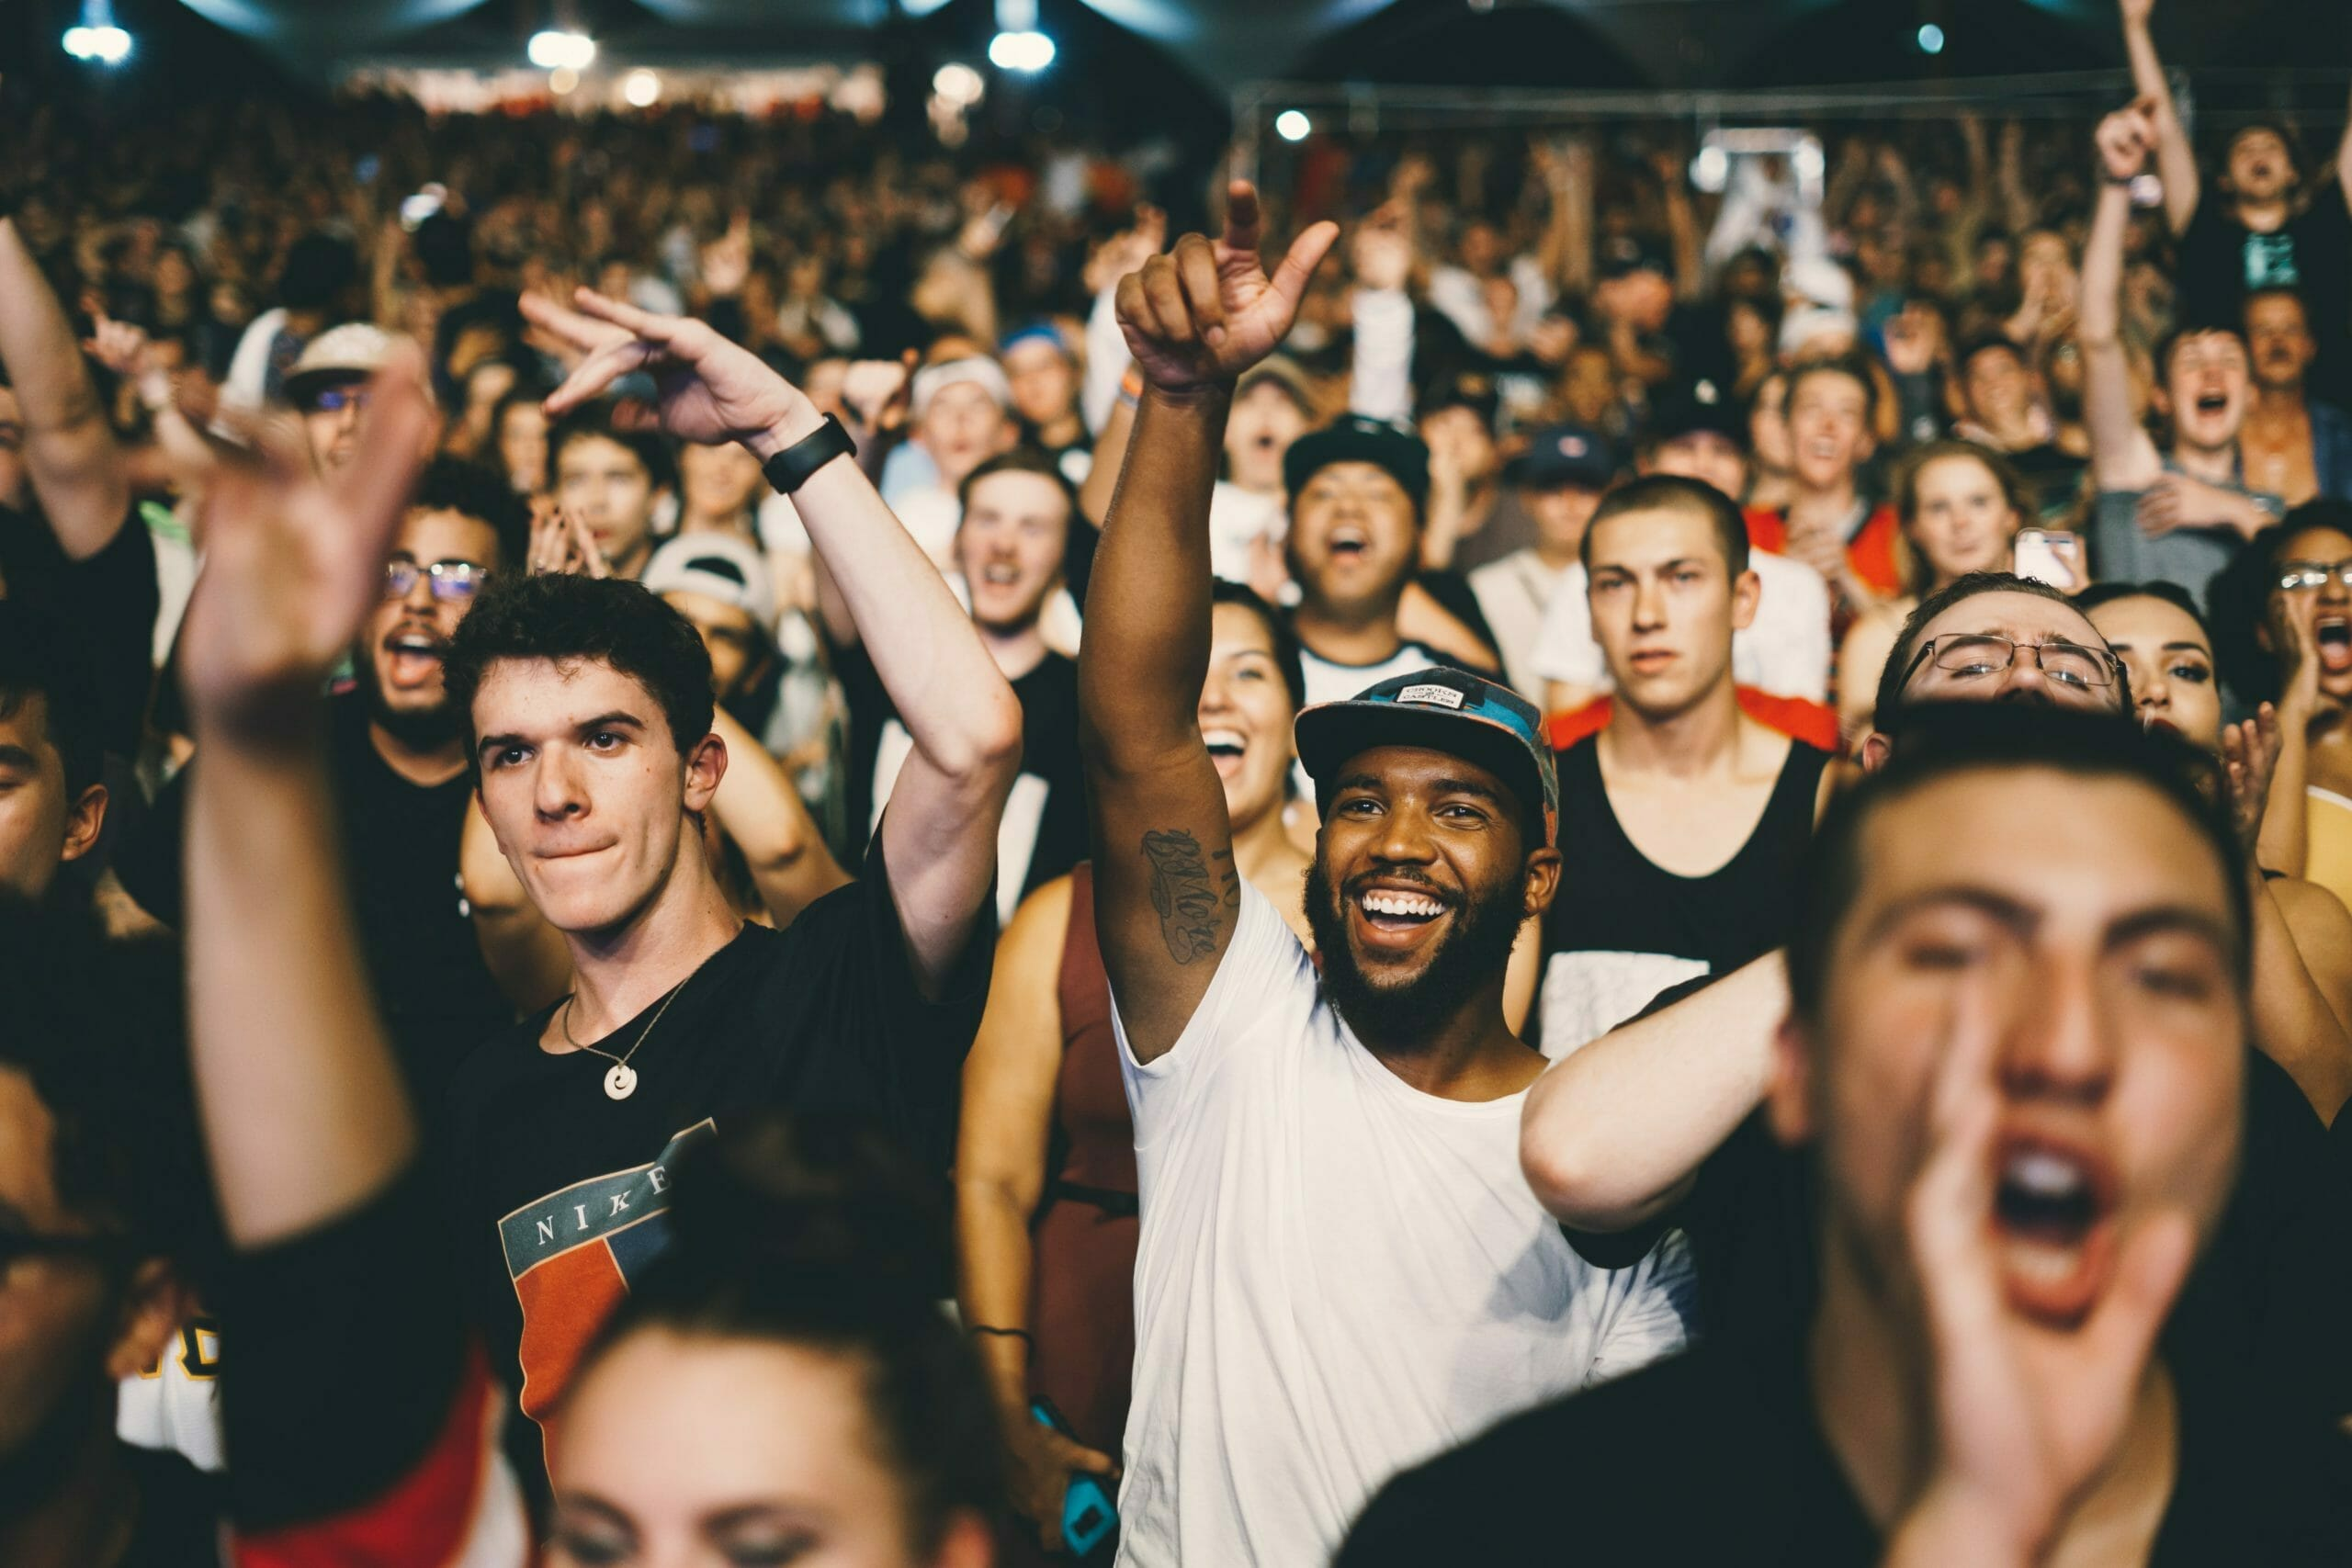 How to Encourage People: 7 Life-Changing Tips via @allamericanatlas